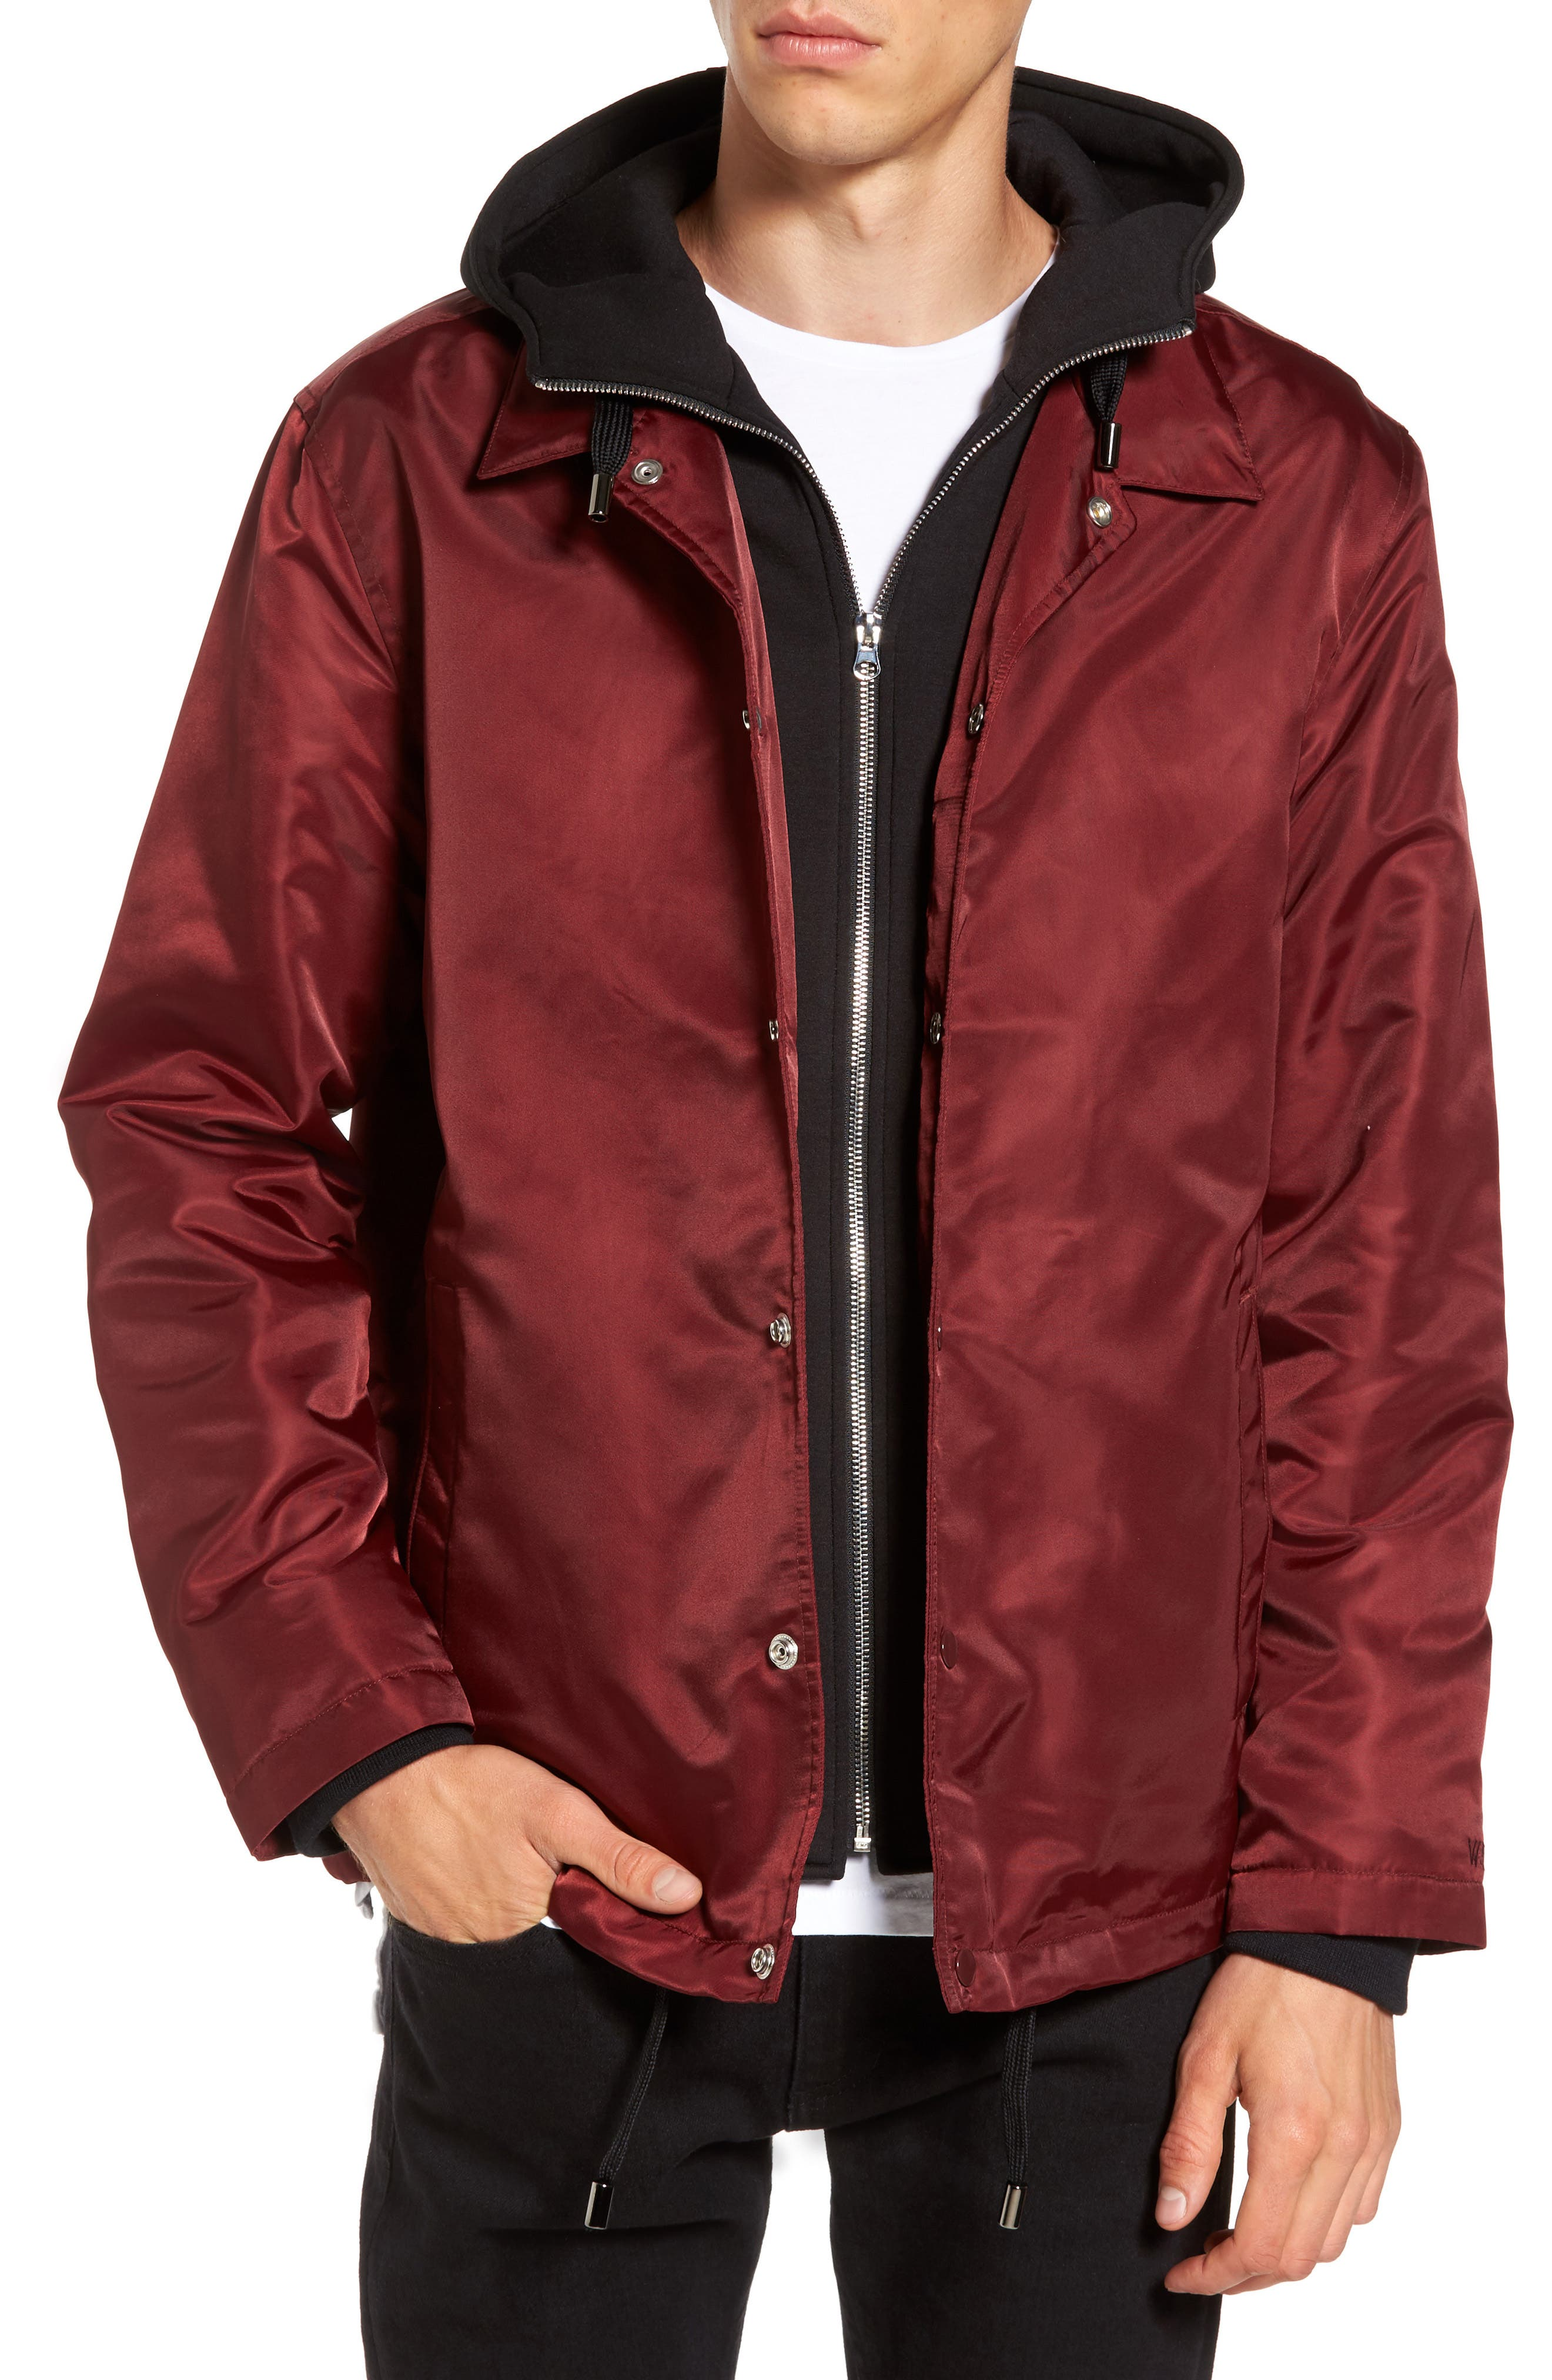 Yorkshire Hooded Coach's Jacket,                             Main thumbnail 1, color,                             Burgundy